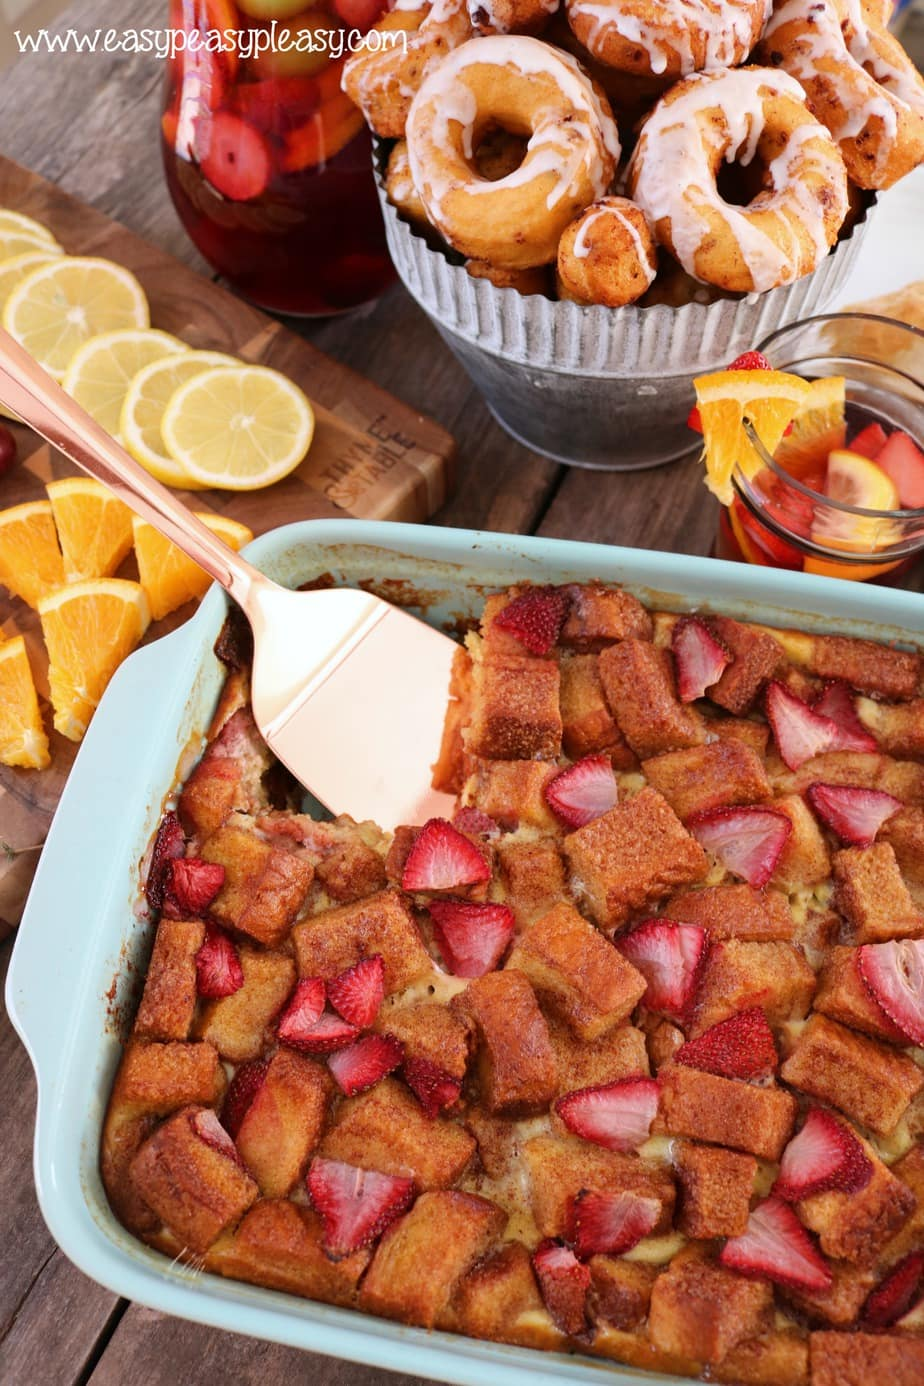 Strawberry French Toast Casserole is the perfect breakfast recipe to build an amazing brunch.